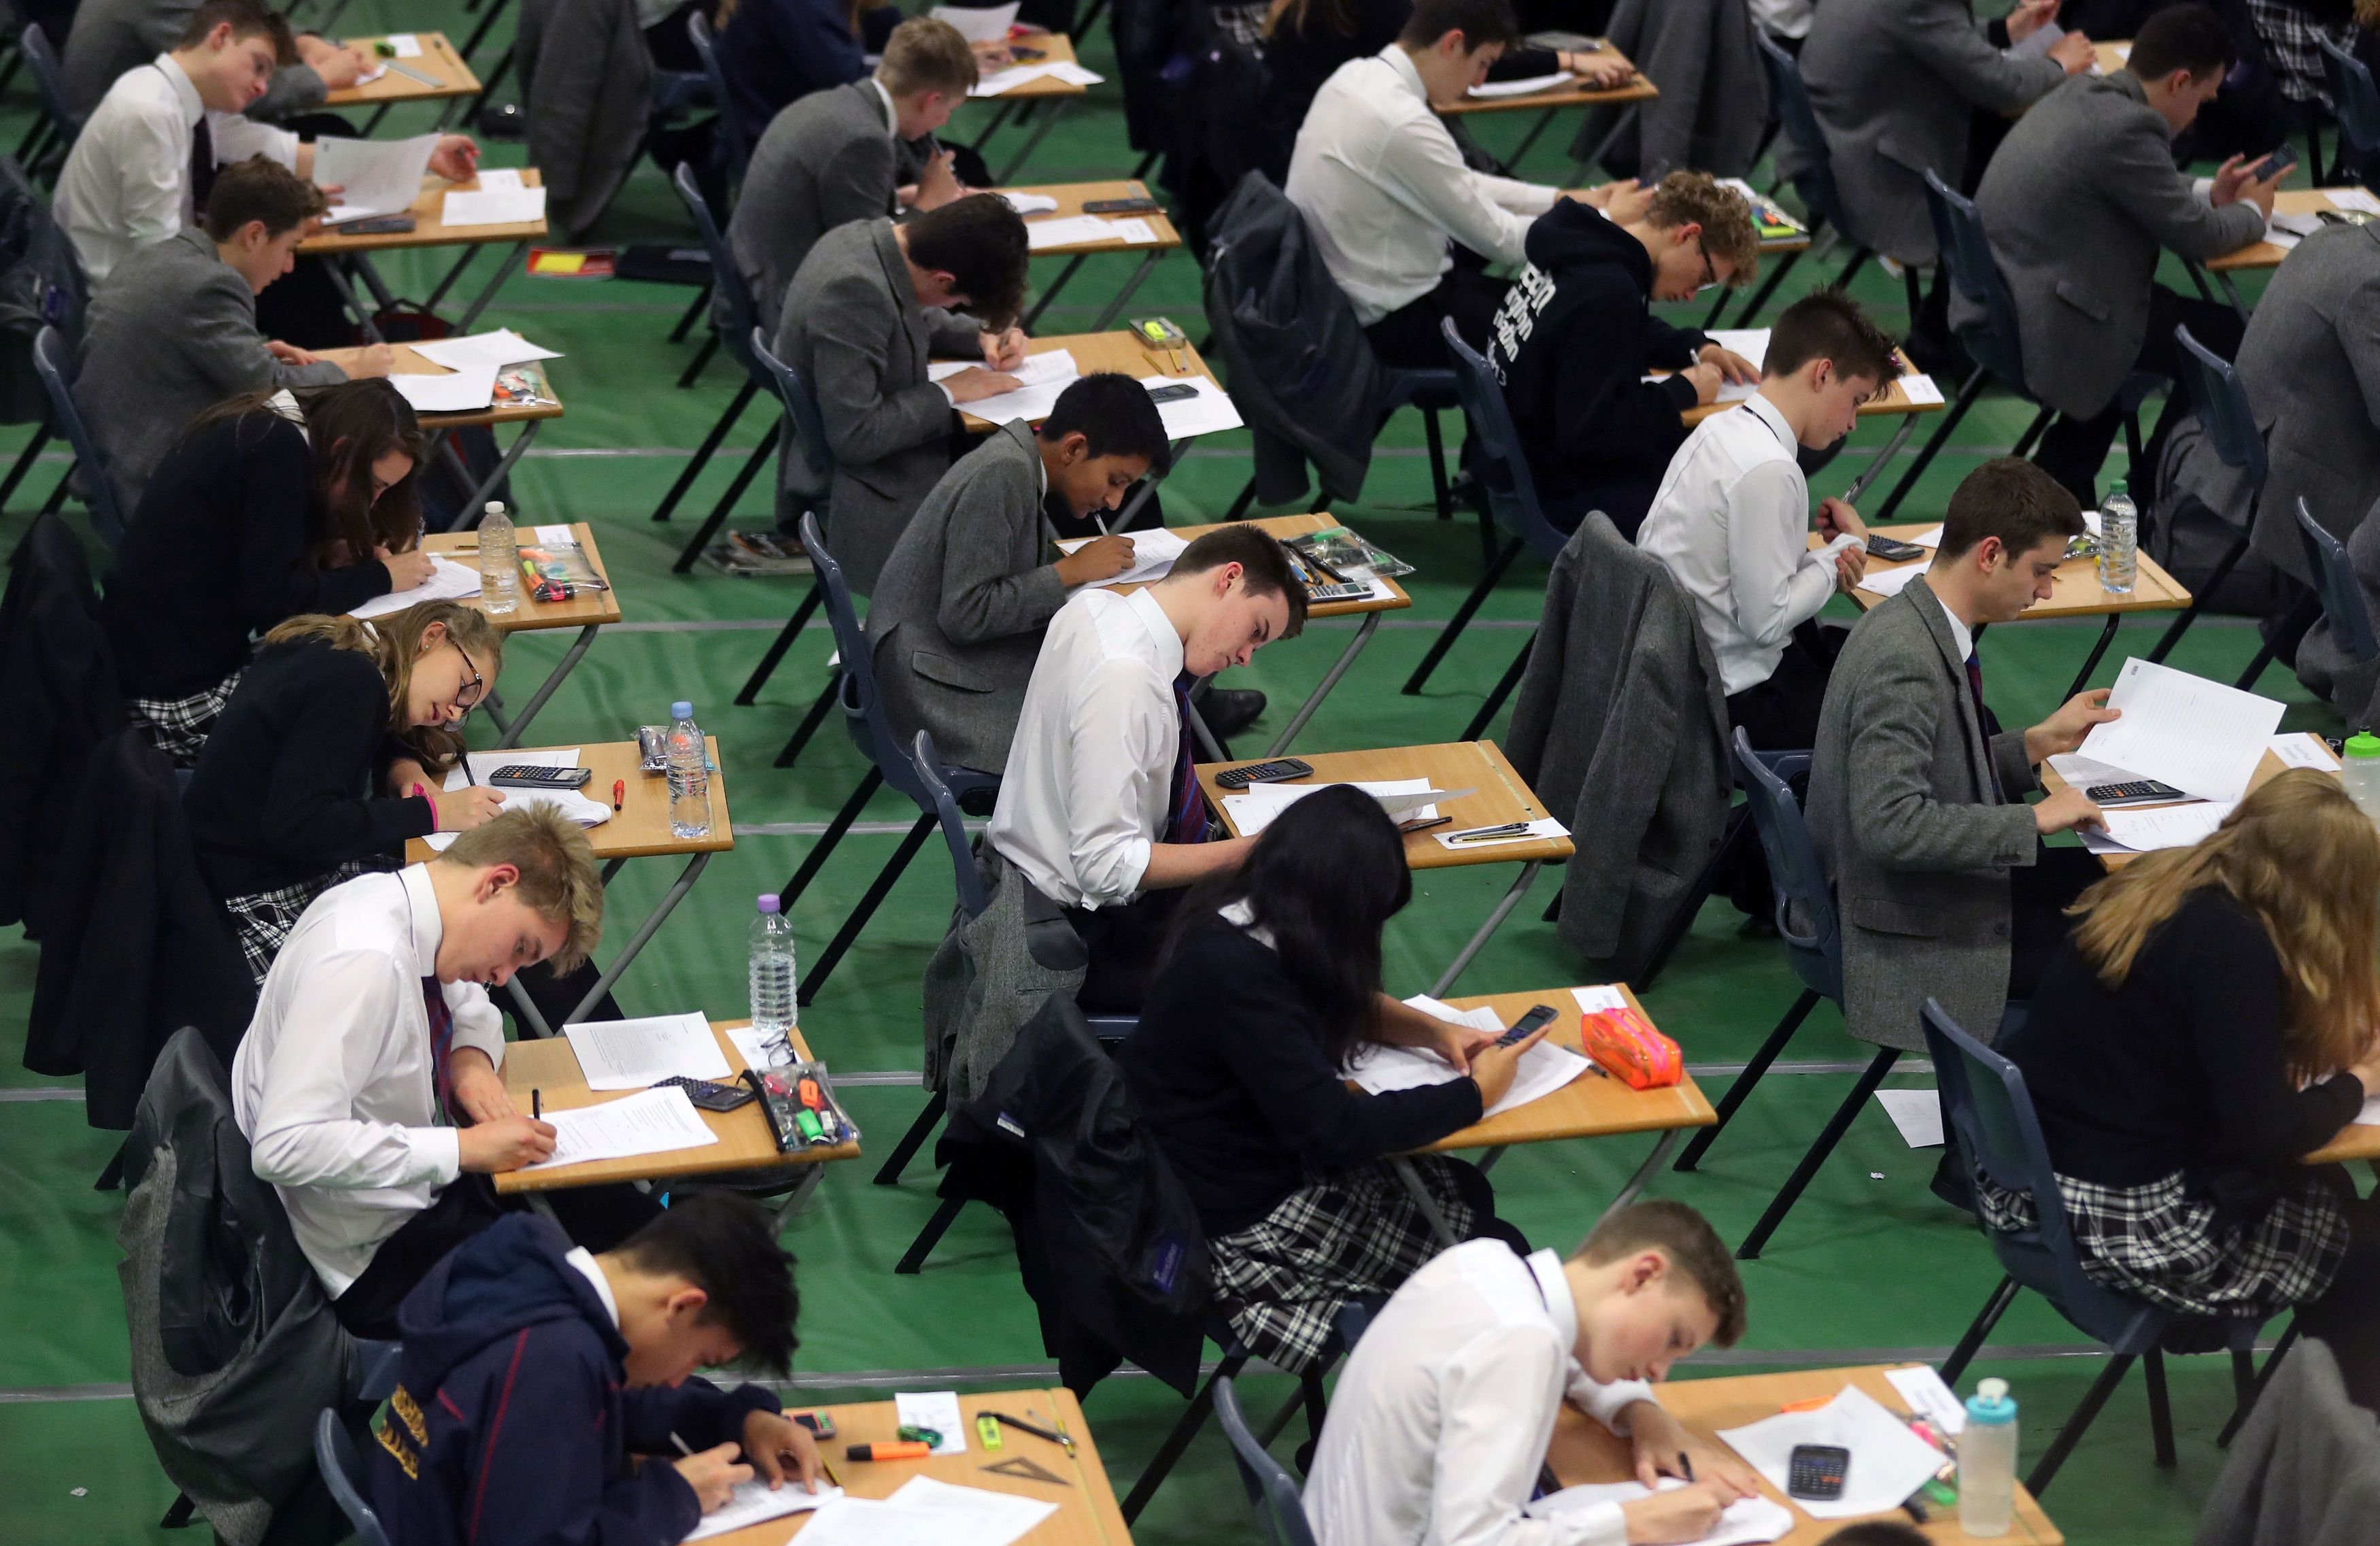 Children Should Sit Exams Earlier To Cope With Test Stress, Says School Standards